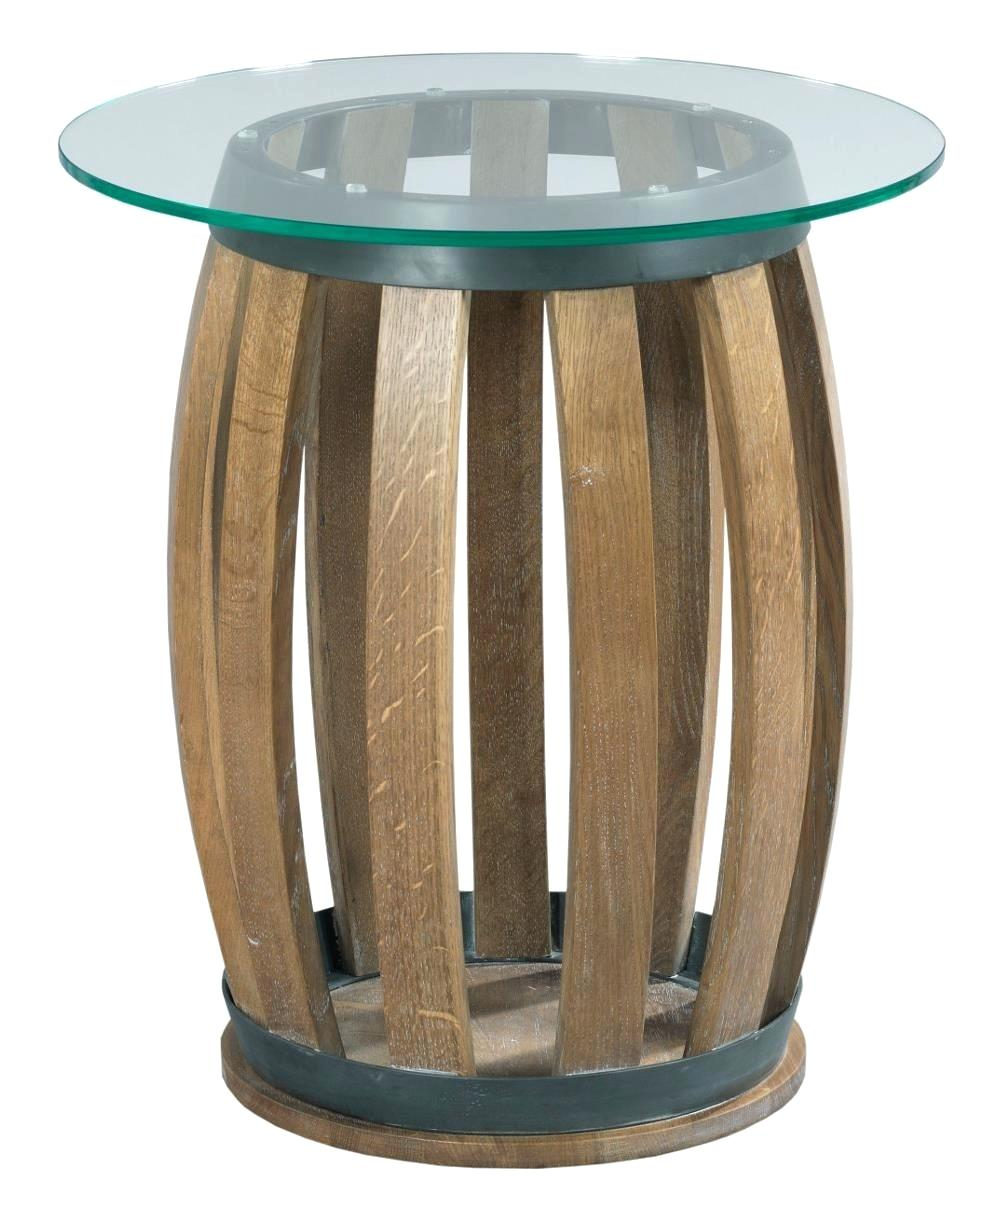 rustic wood accent table furniture stone ridge wine barrel with tempered glass top and metal garden round pedestal hampton bay pembrey french style small red wall clock triangle